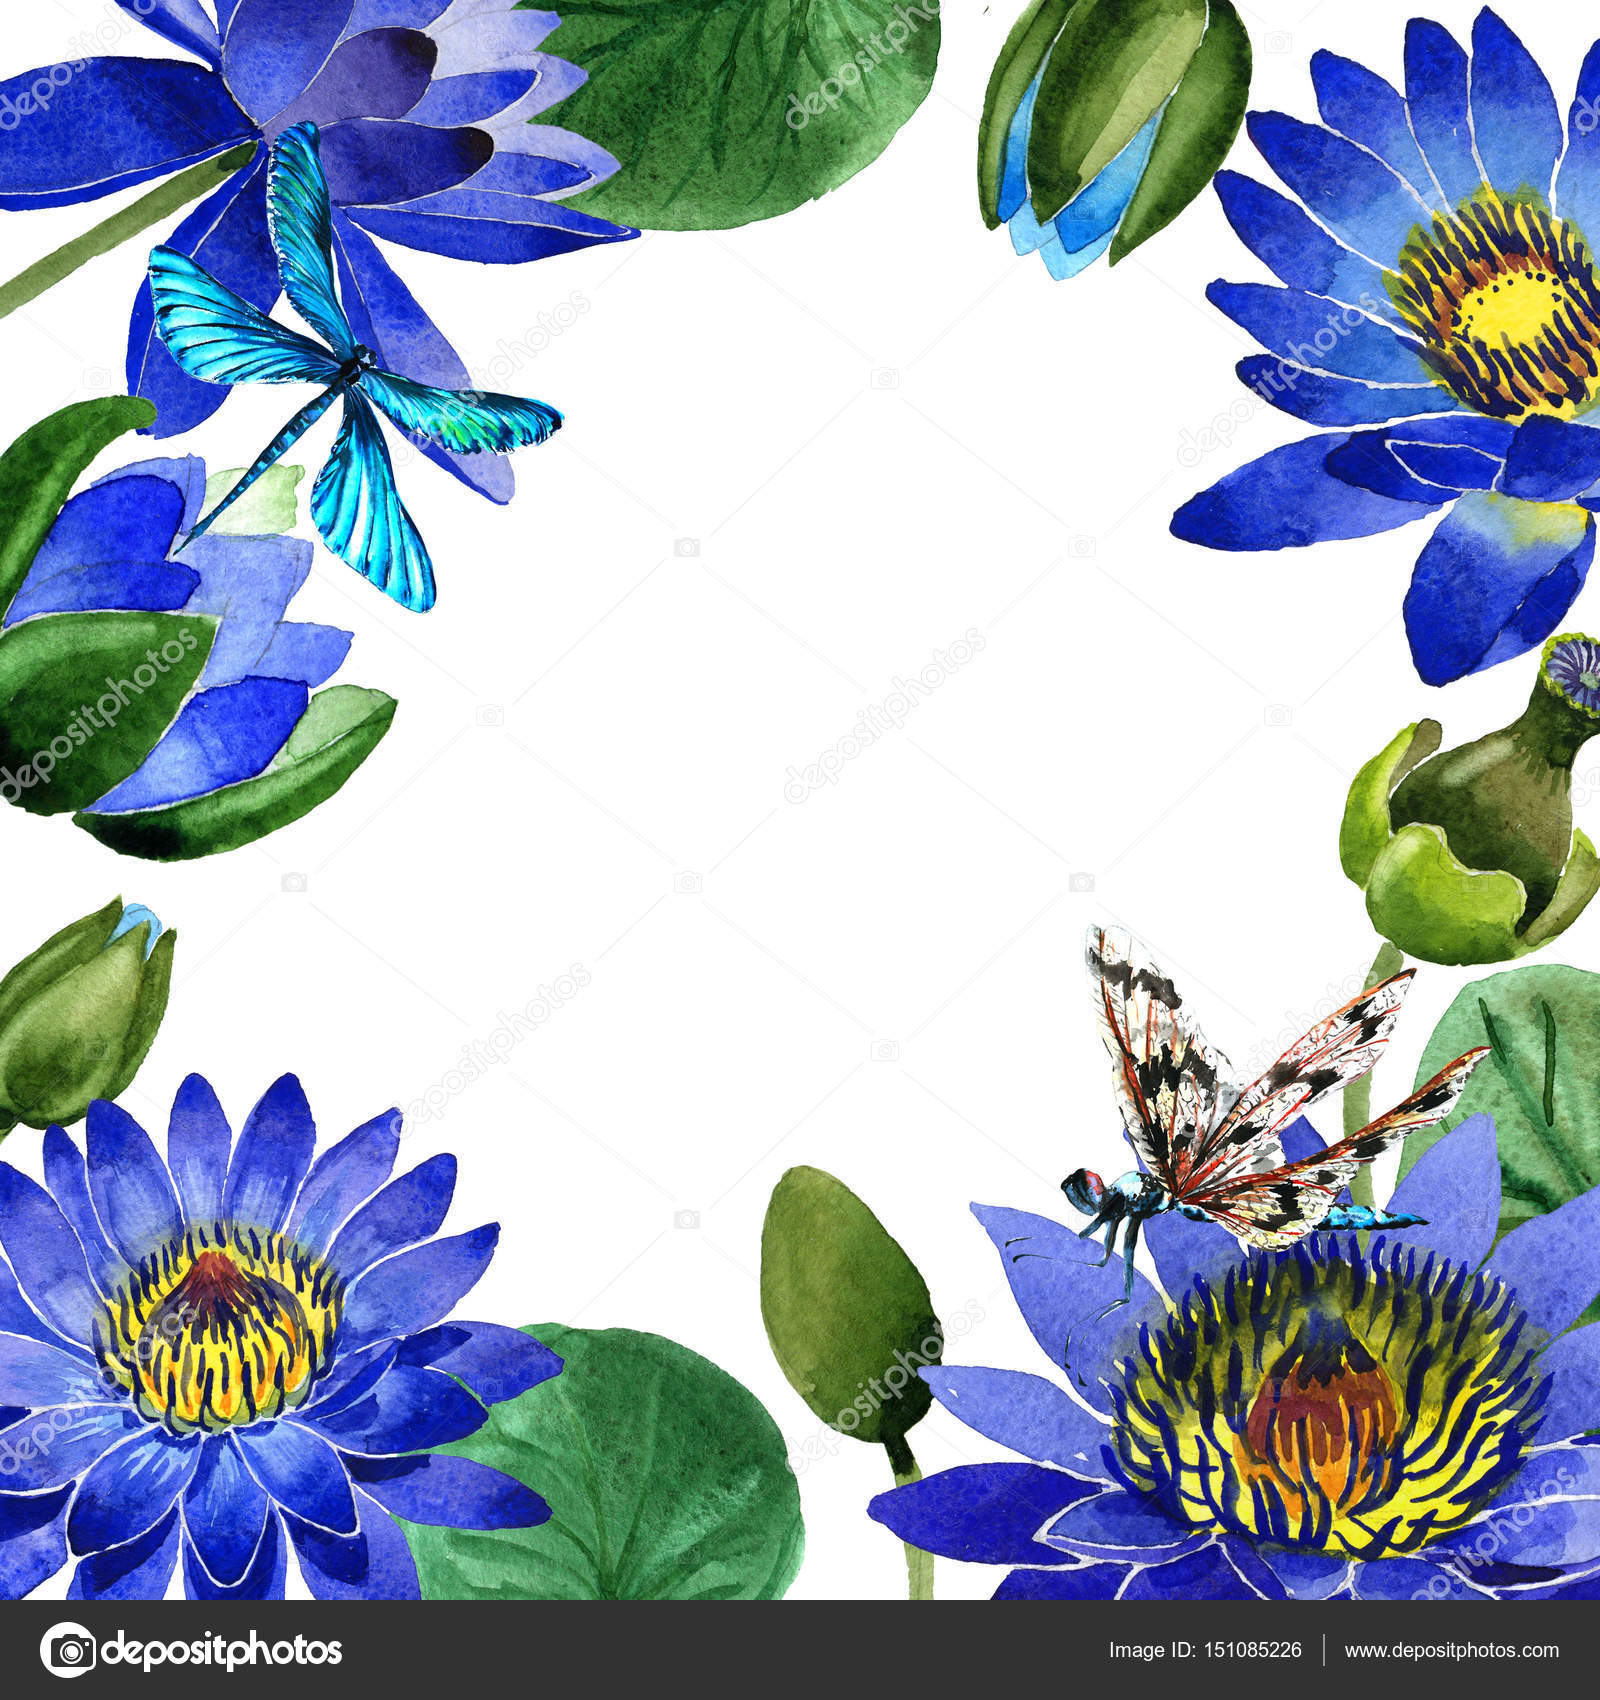 Wildflower Blue Lotus Flower Frame In A Watercolor Style Isolated